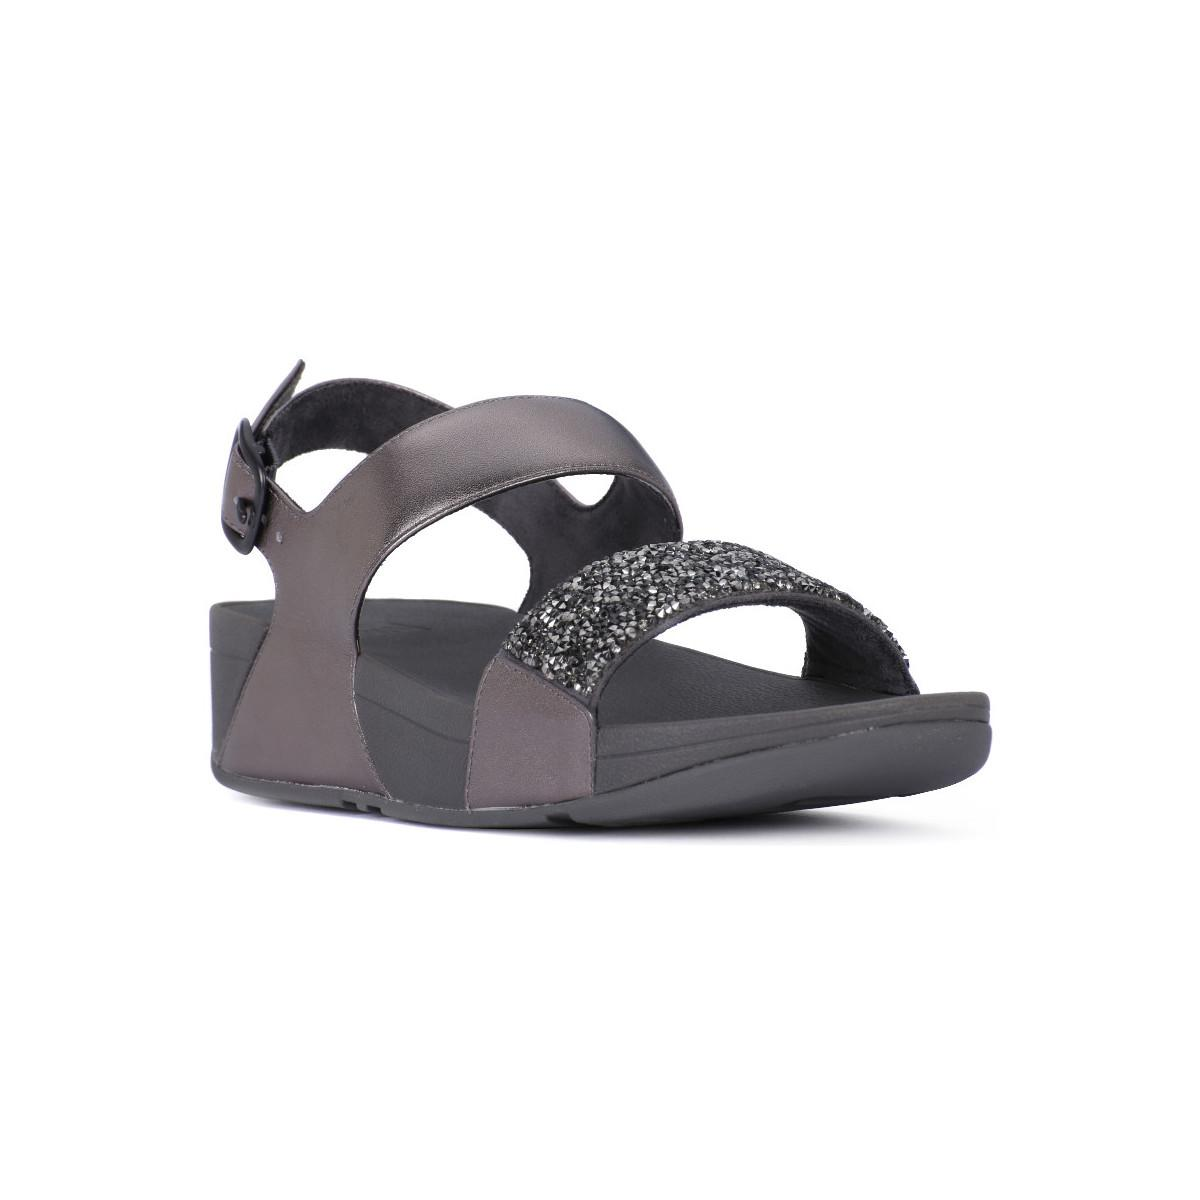 010b4c075f9 Fitflop Fit Flop Sparklie Crystal Women s Sandals In Grey in Gray - Lyst